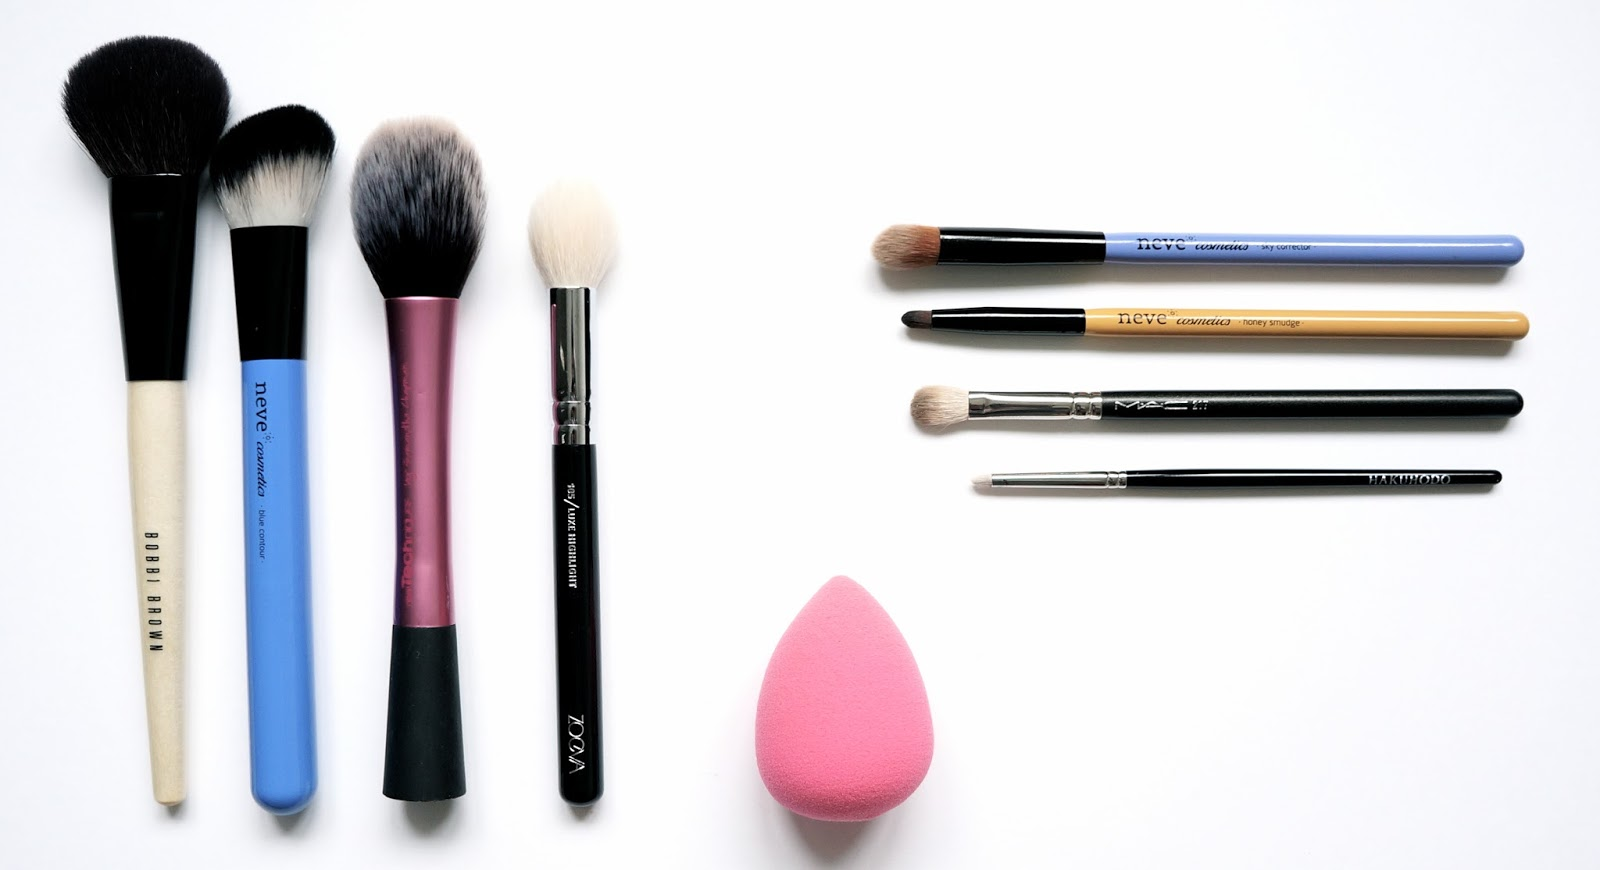 Mes Pinceaux maquillages Makeup Brushes Beauty Blender Real Techniques Zoeva Neve Cosmetics MAC Bobbi Brown Hahukodo Lexie Blush